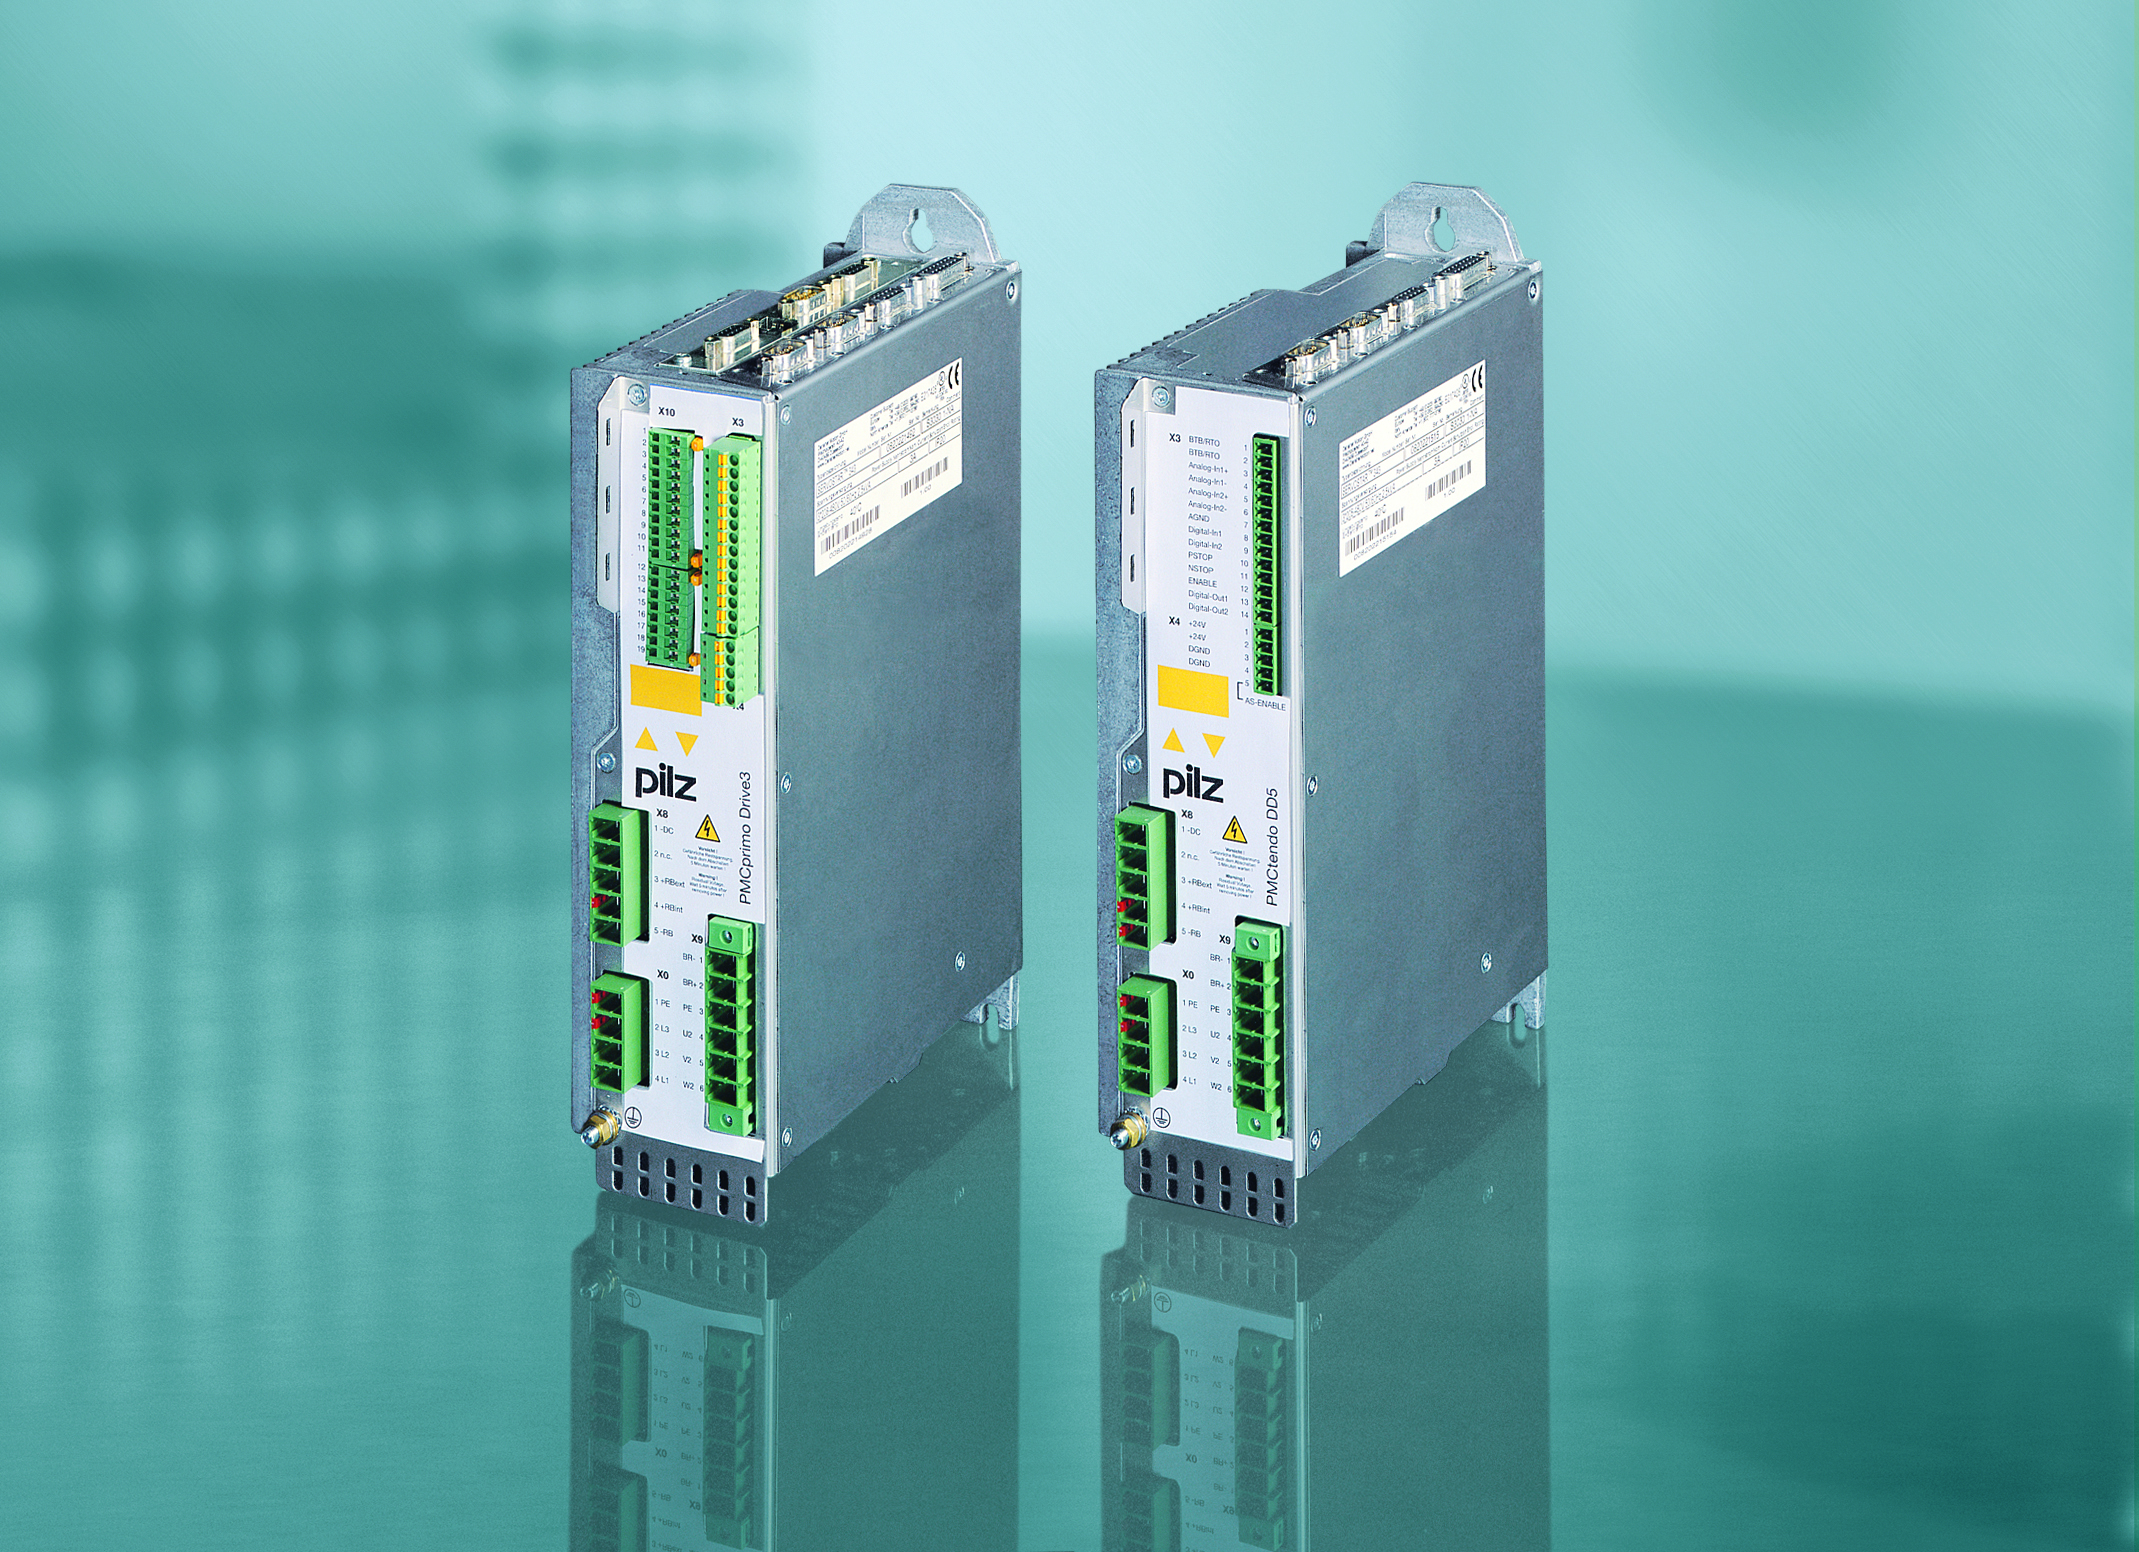 Modern servo amplifiers from Pilz